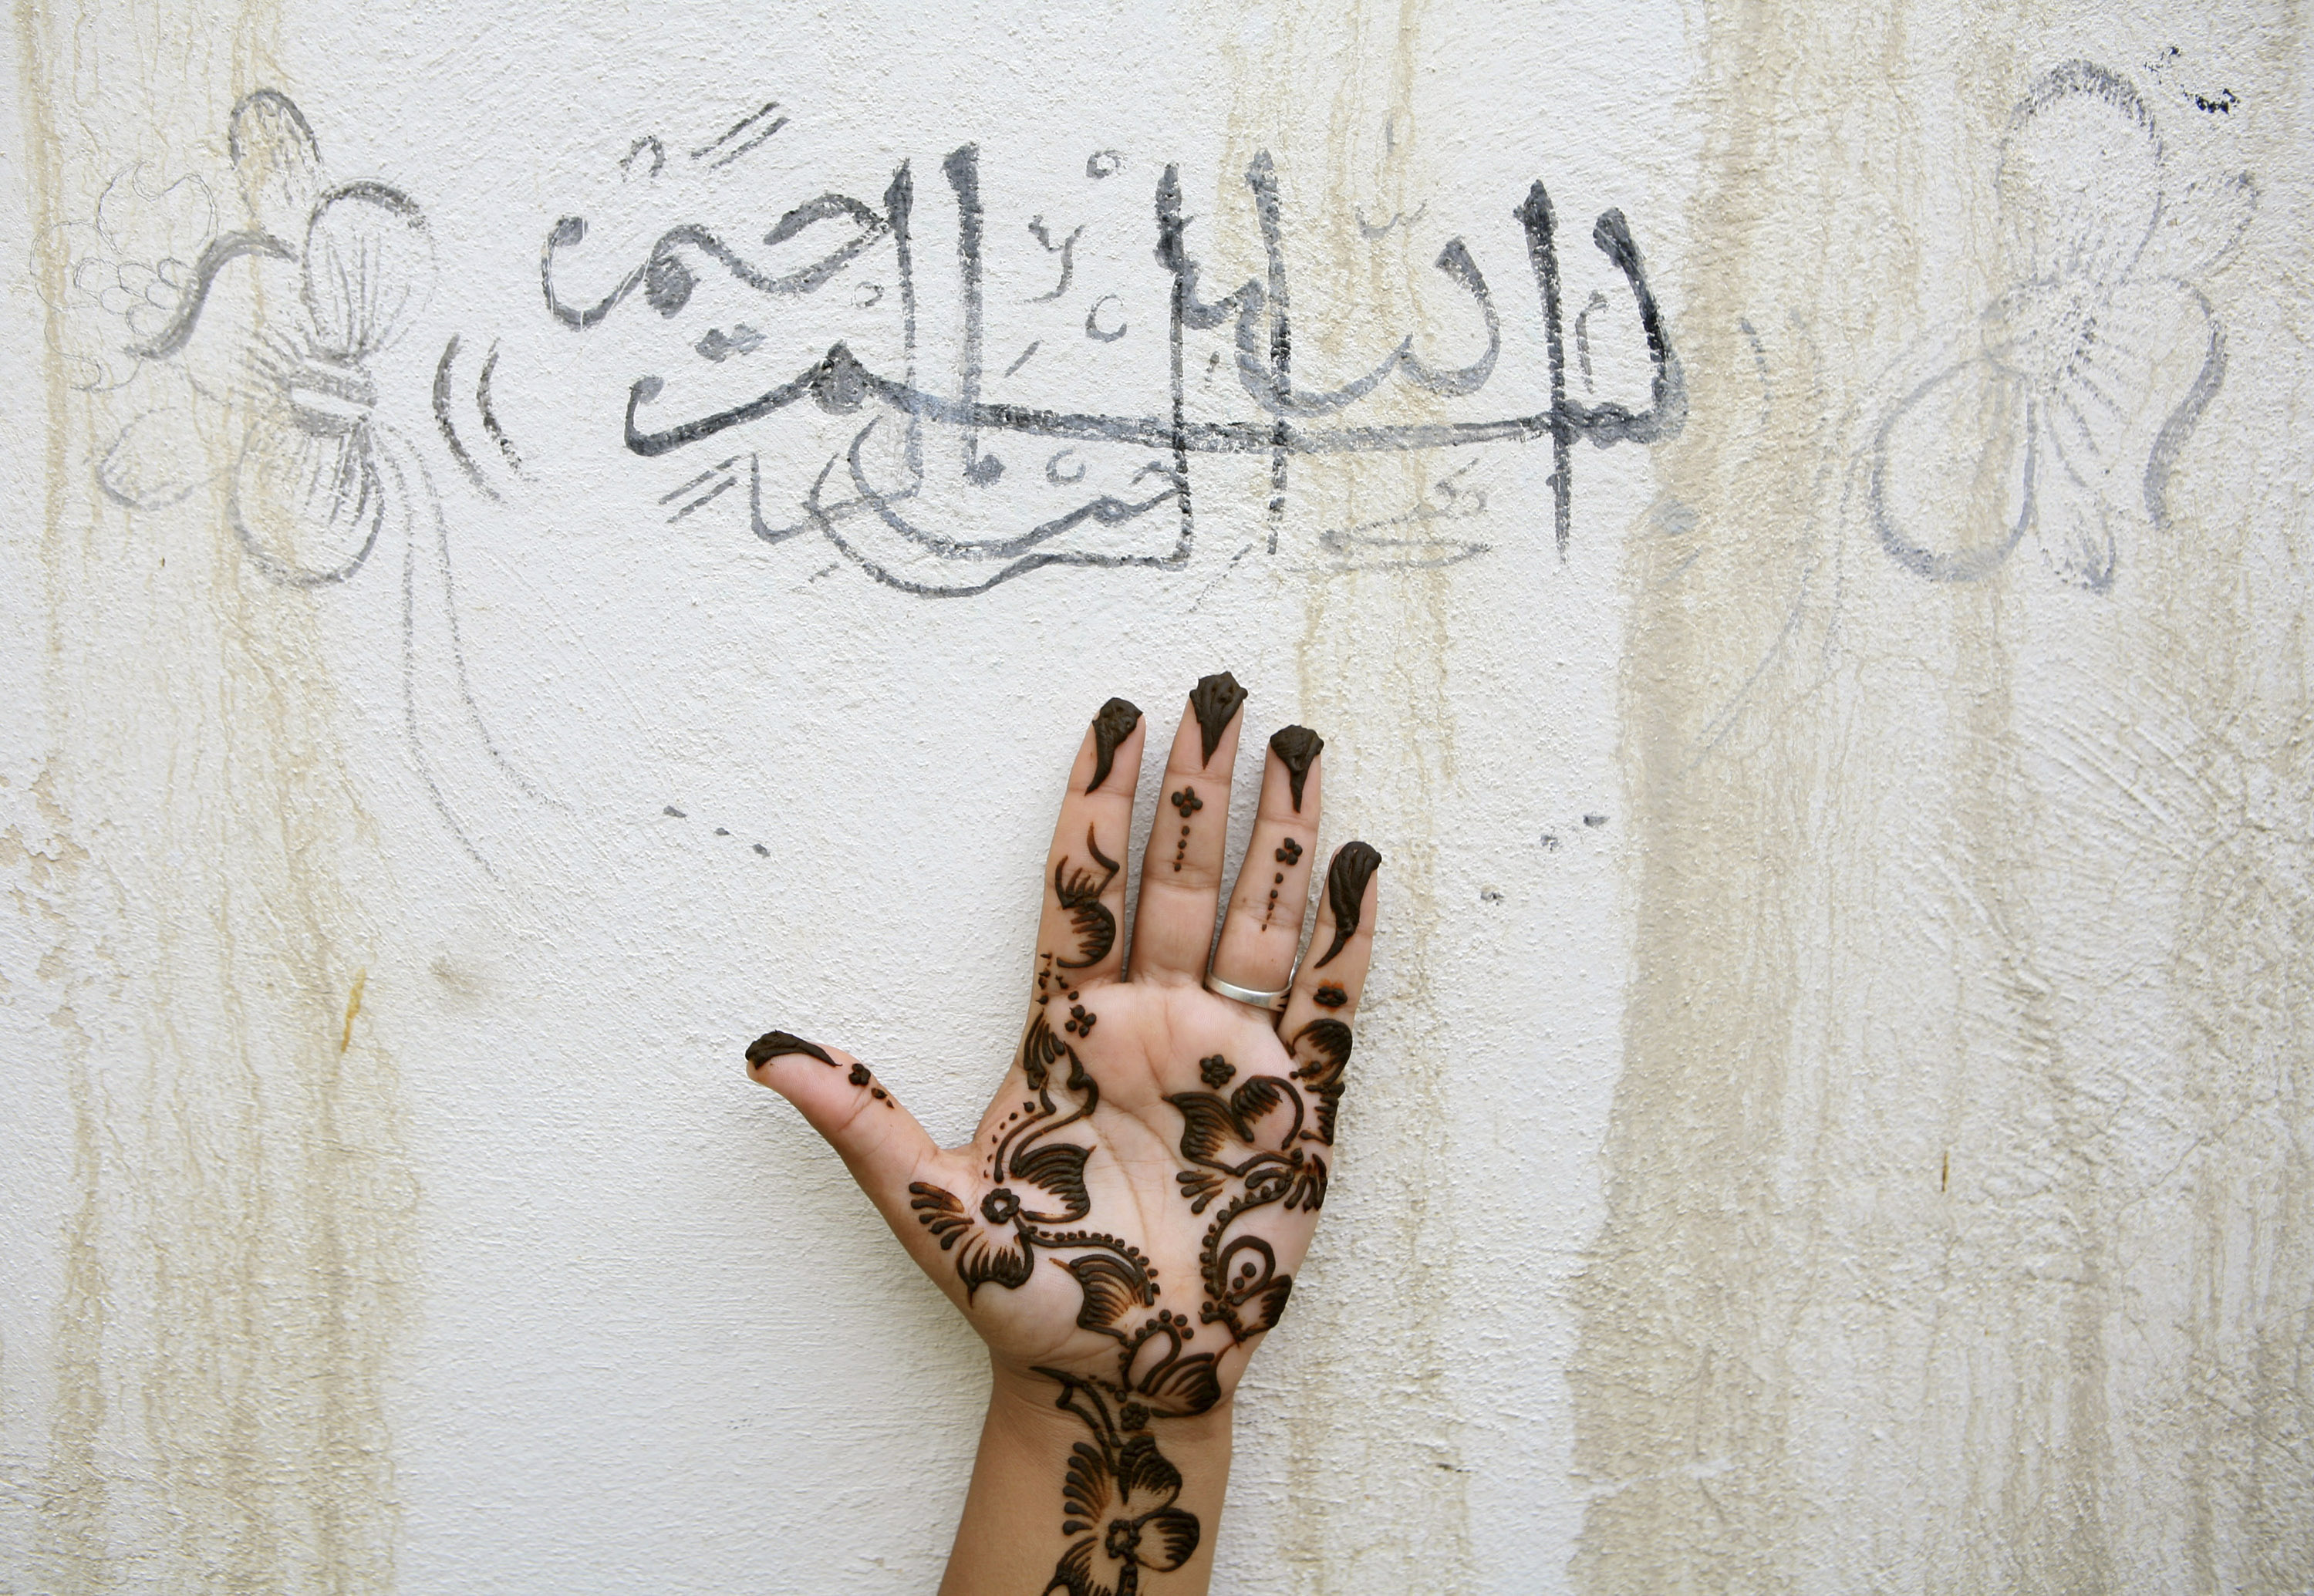 """An Iranian woman holds up her hand, painted with henna, under a religious sentence as she prepares for a wedding ceremony in the city of Qeshm on Qeshm Island at the Persian Gulf, November 1, 2006. The sentence reads, """"In the name of Allah, the Beneficent"""